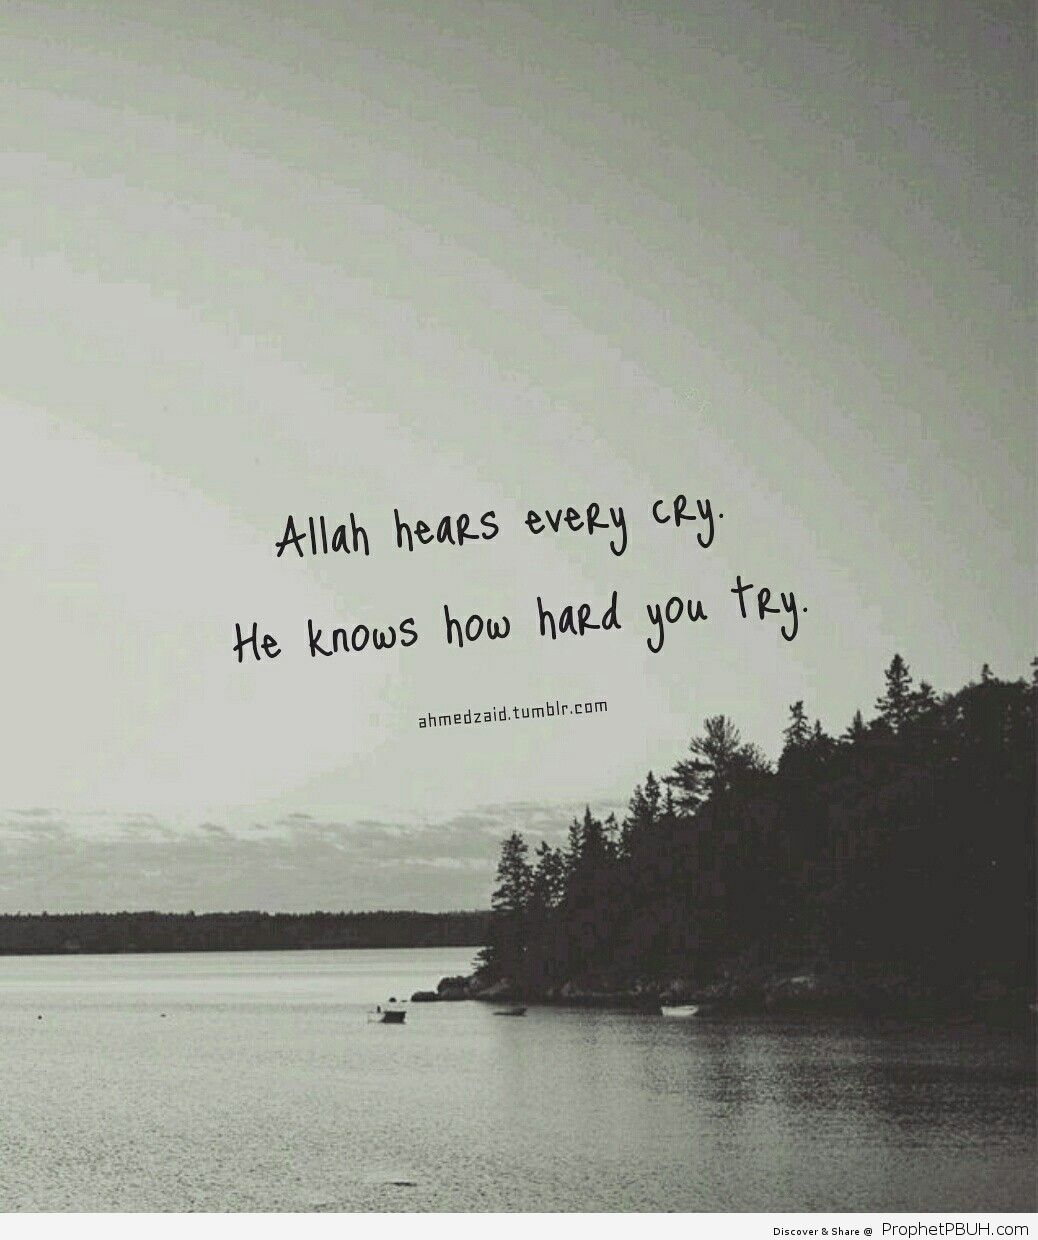 Indeed Allah knows you and sees you and cares about you more than you can imagine